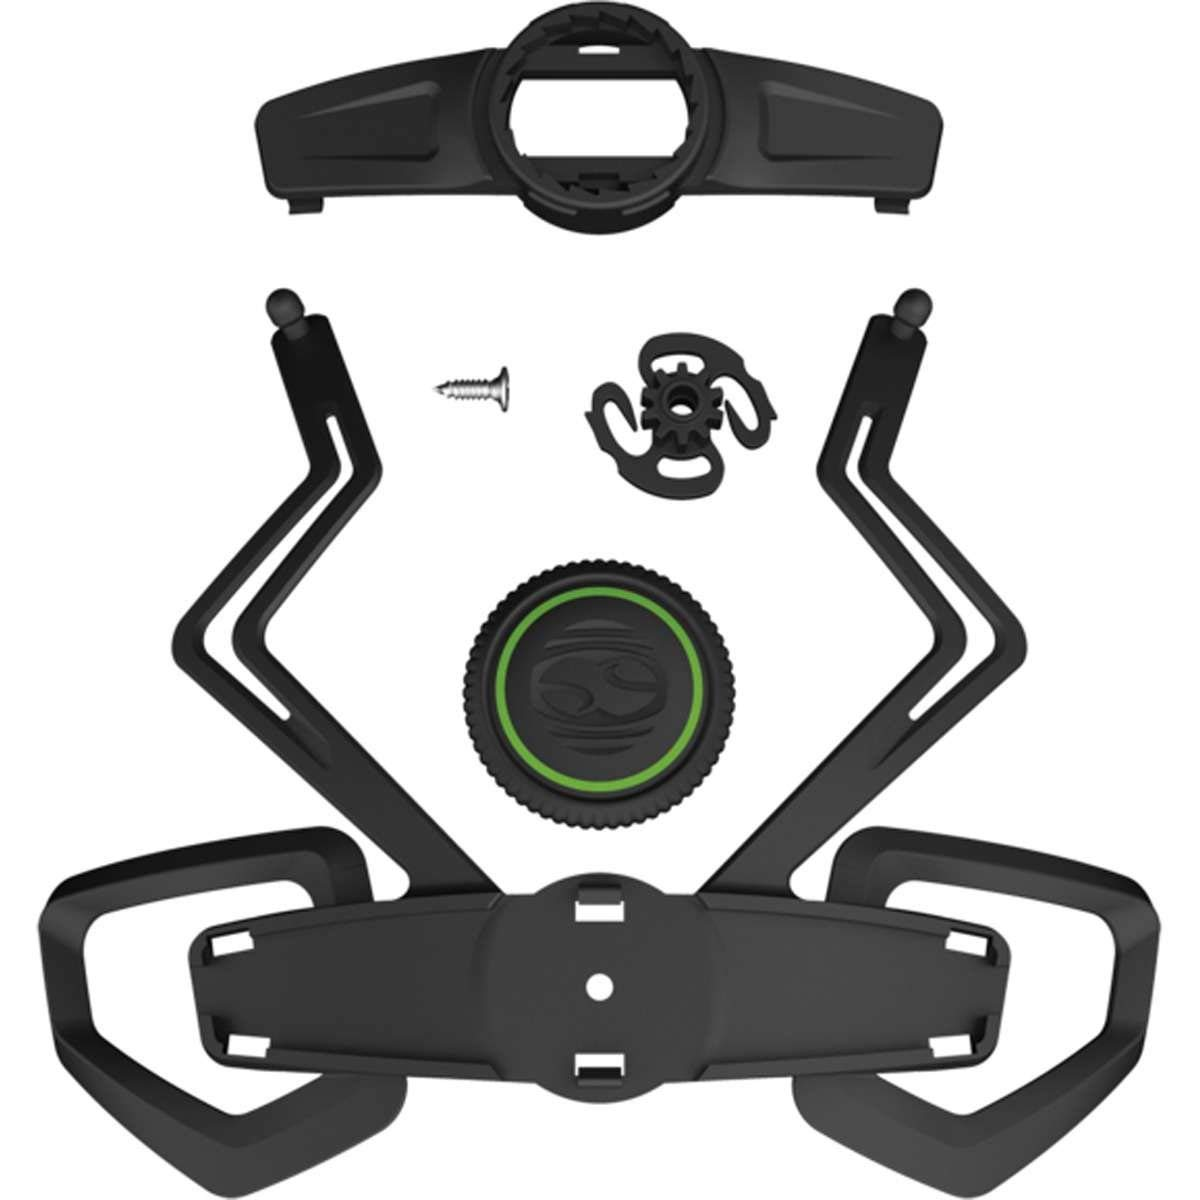 a3a50a5f6ae Get Quotations · IXS Trail RS Evo Helmet Replacement Dial Adjuster Unit -  470-510-3090-